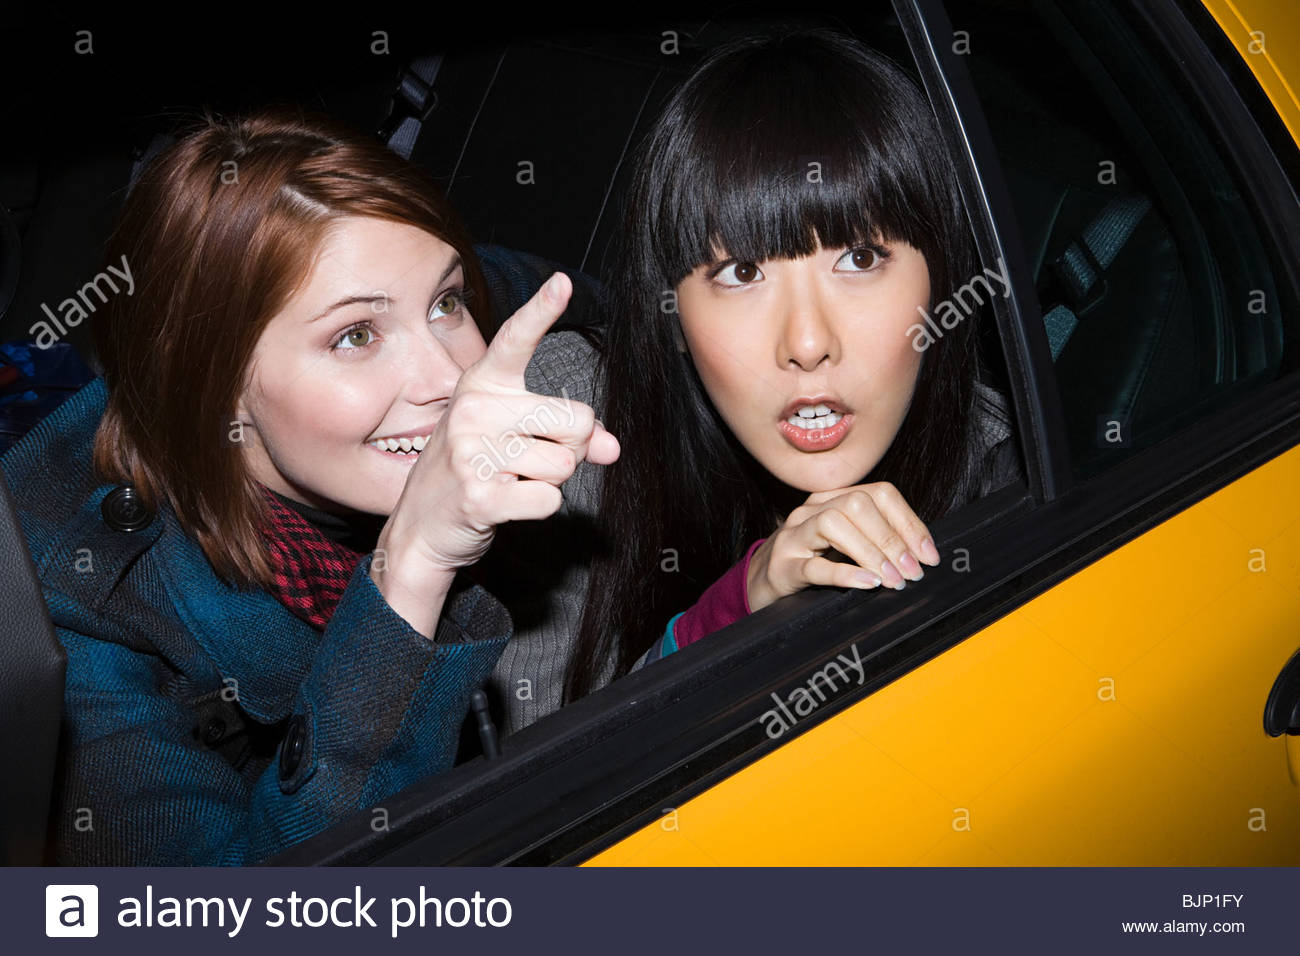 Girlfriends in a taxicab - Stock Image